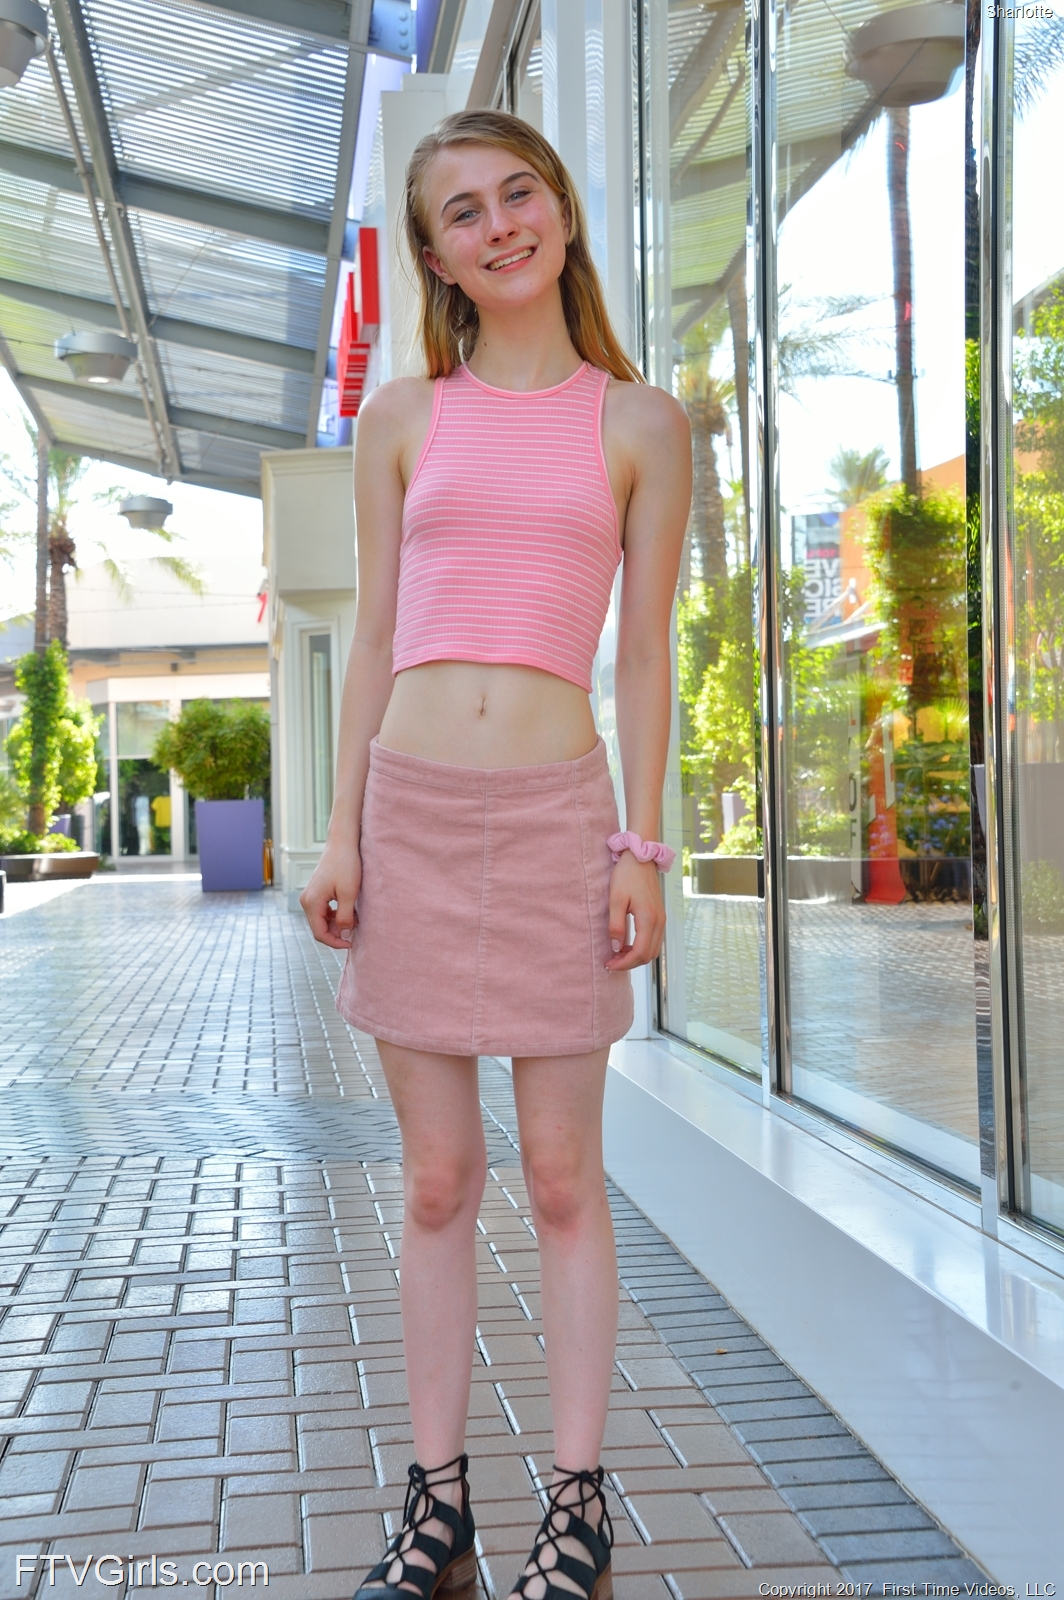 a frisky college girls flashing her pussy in the shoppingmall #3